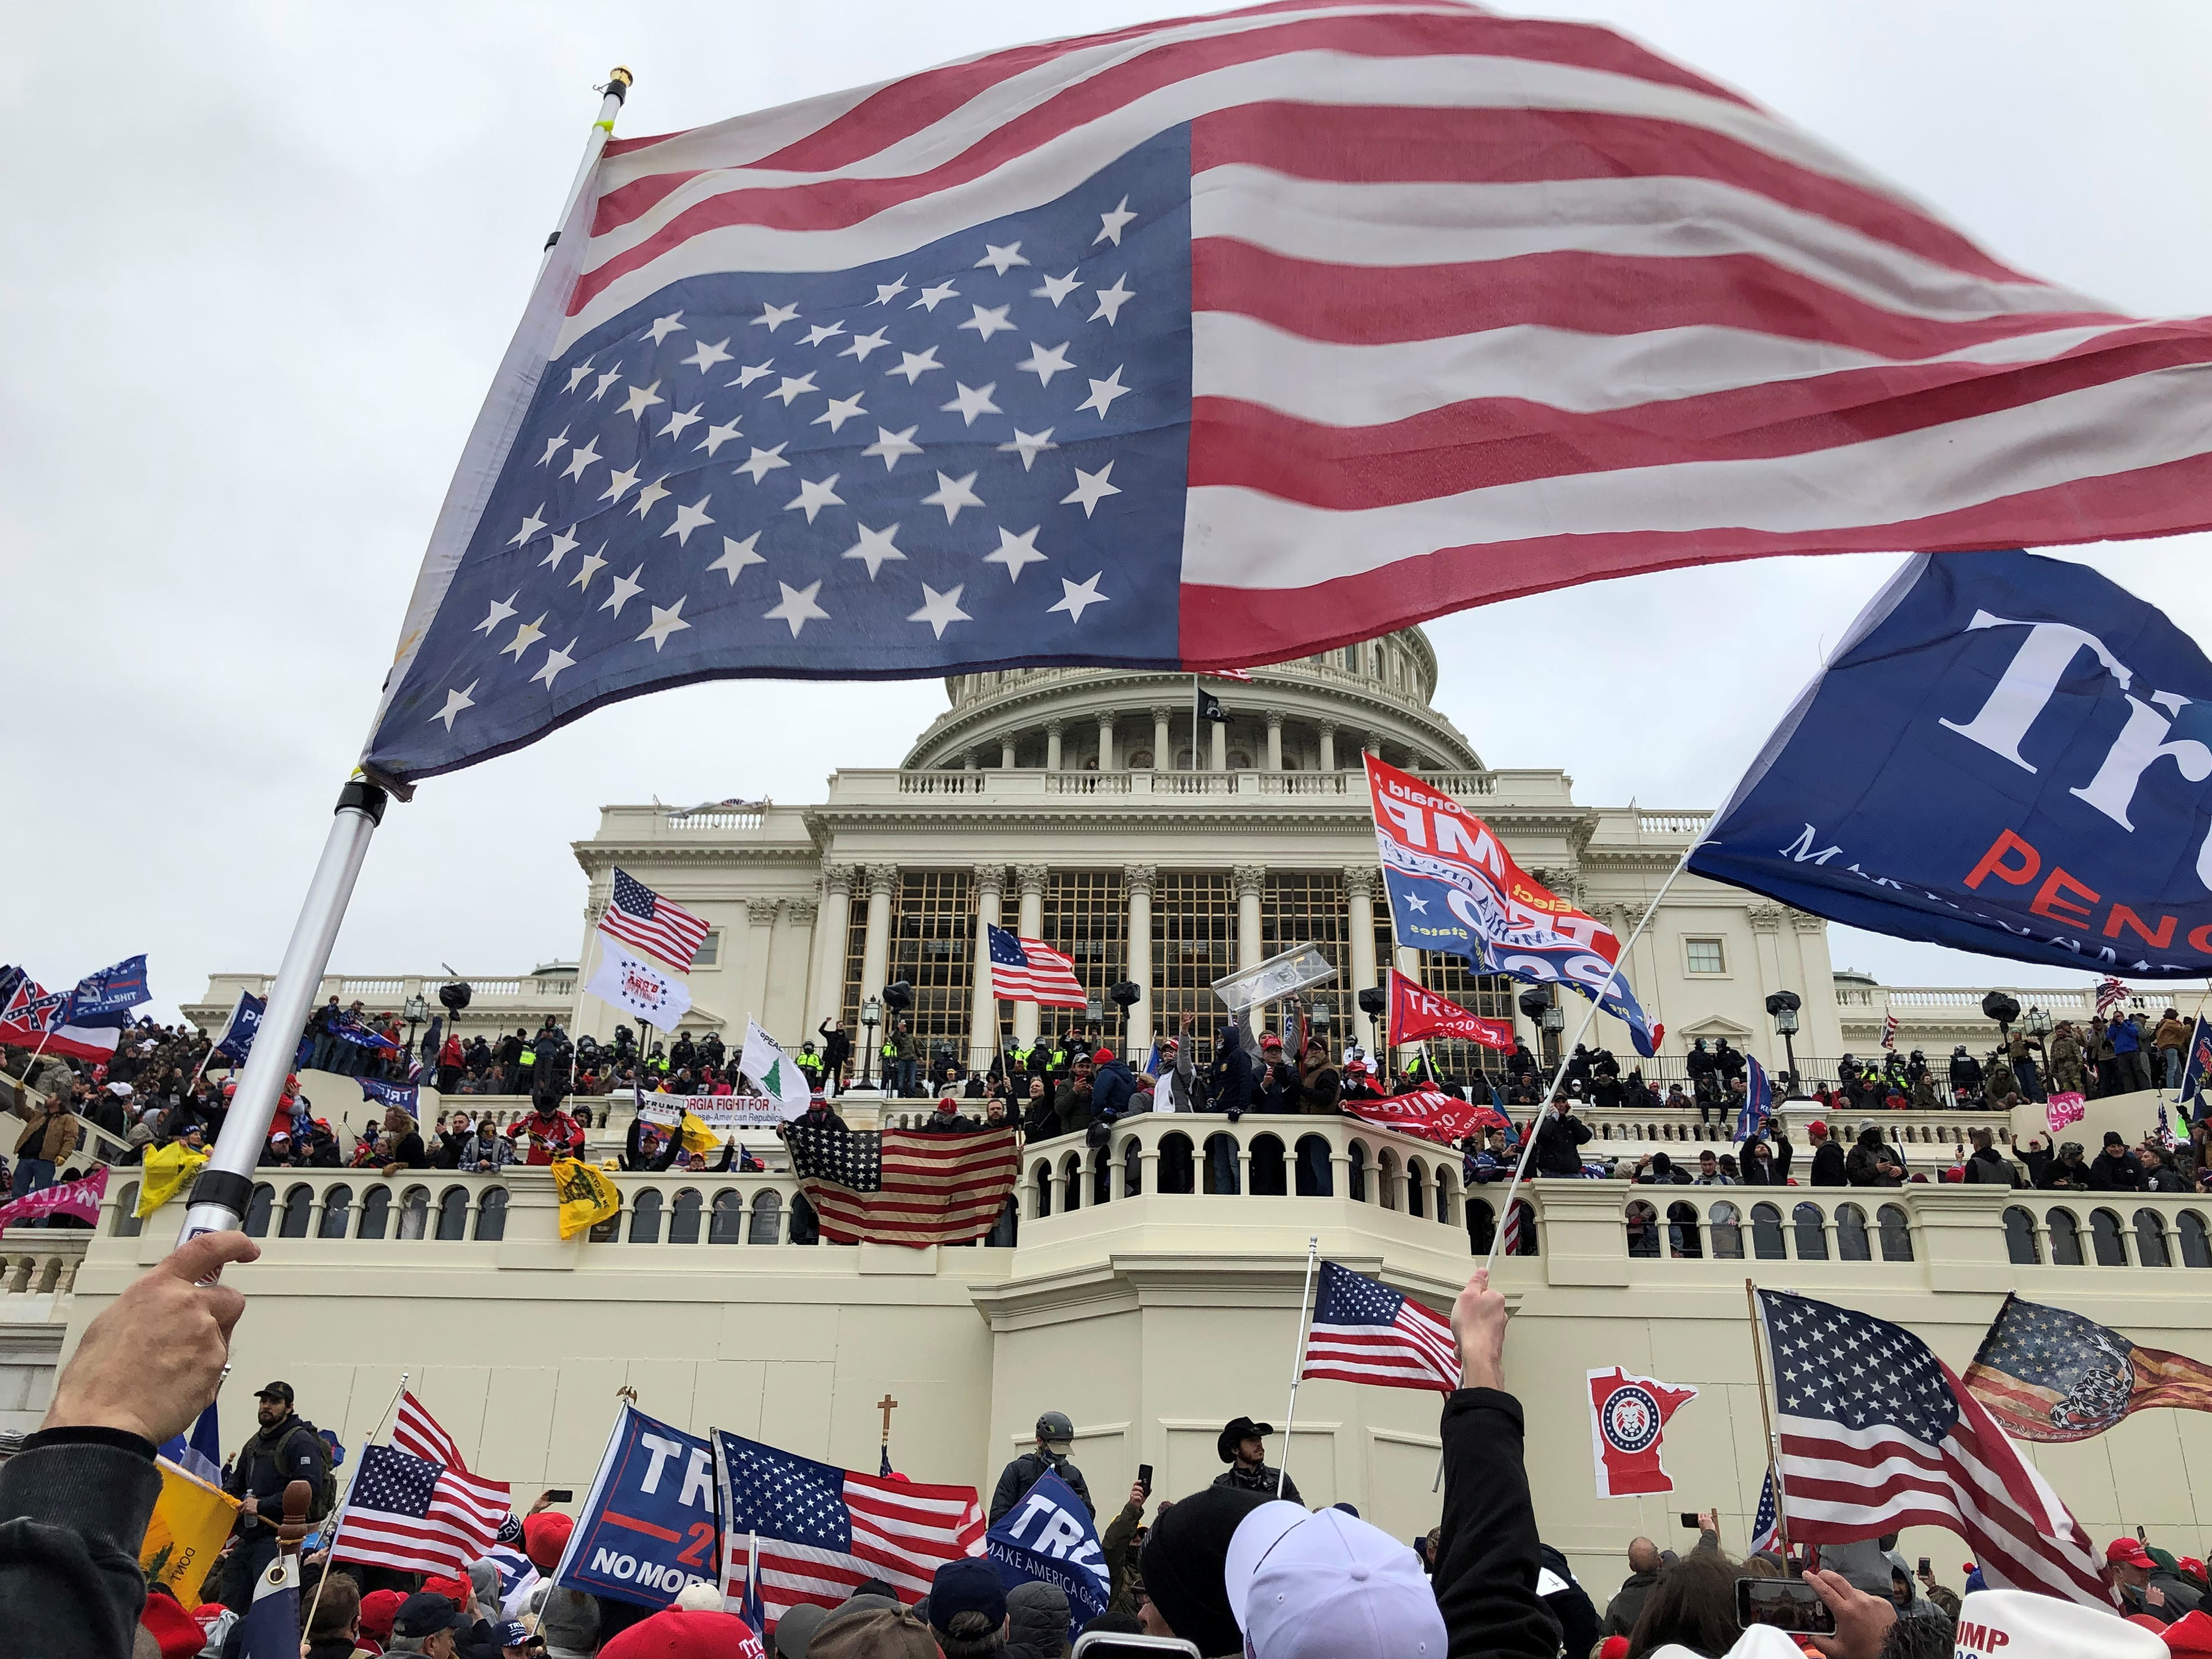 Supporters of U.S. President Donald Trump occupy the U.S. Capitol Building in Washington, U.S., January 6, 2021. Thomas P. Costello/USA TODAY via REUTERS